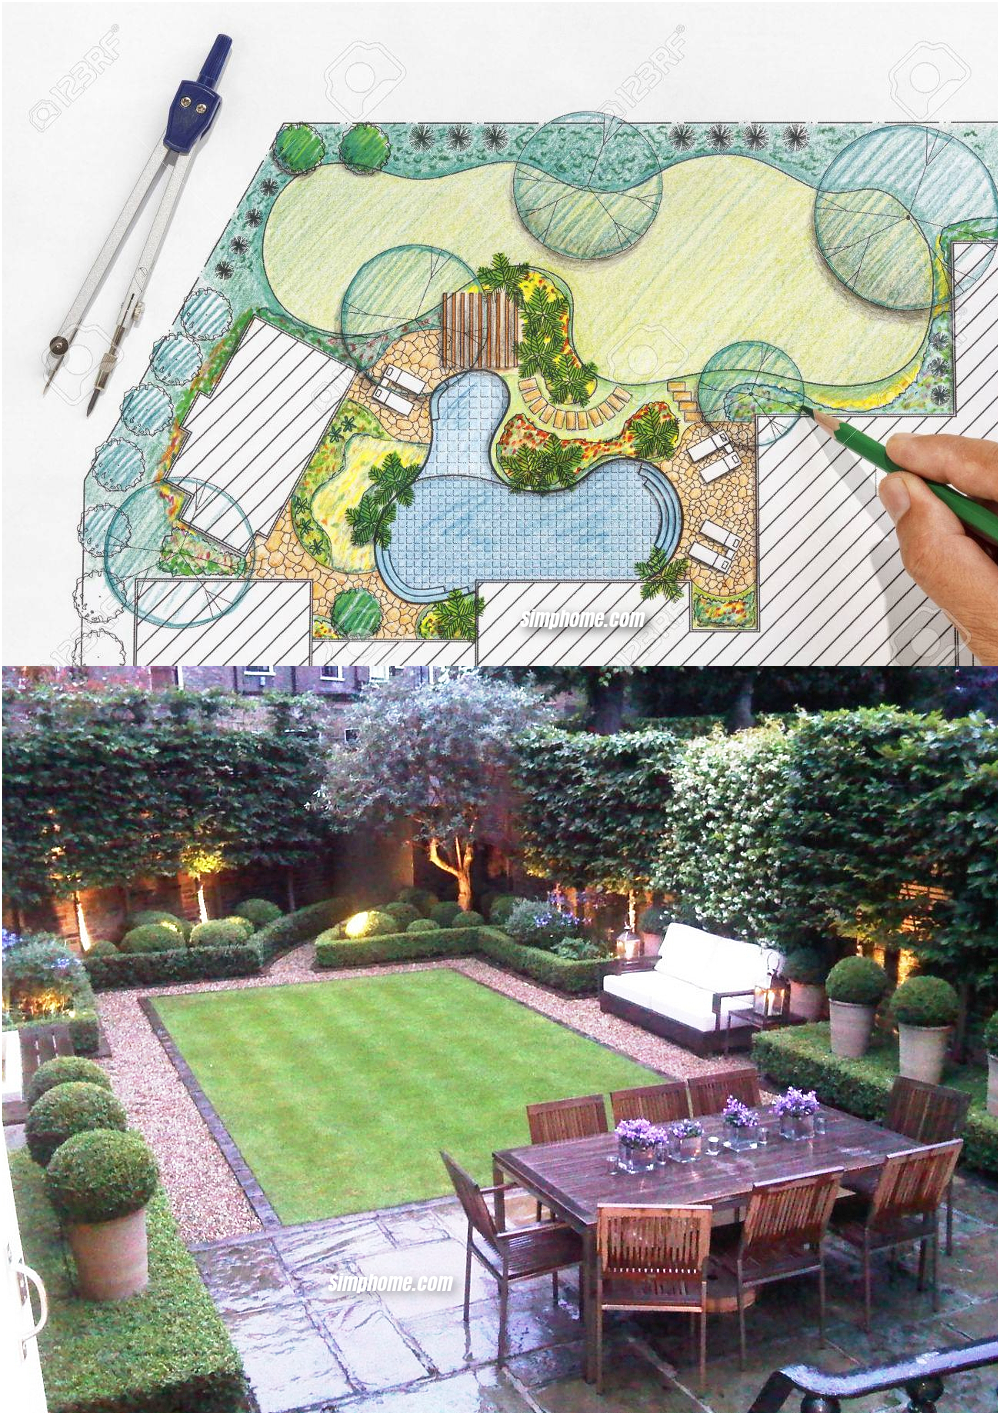 Simphome.com landscape architect design backyard plan for villa ideas